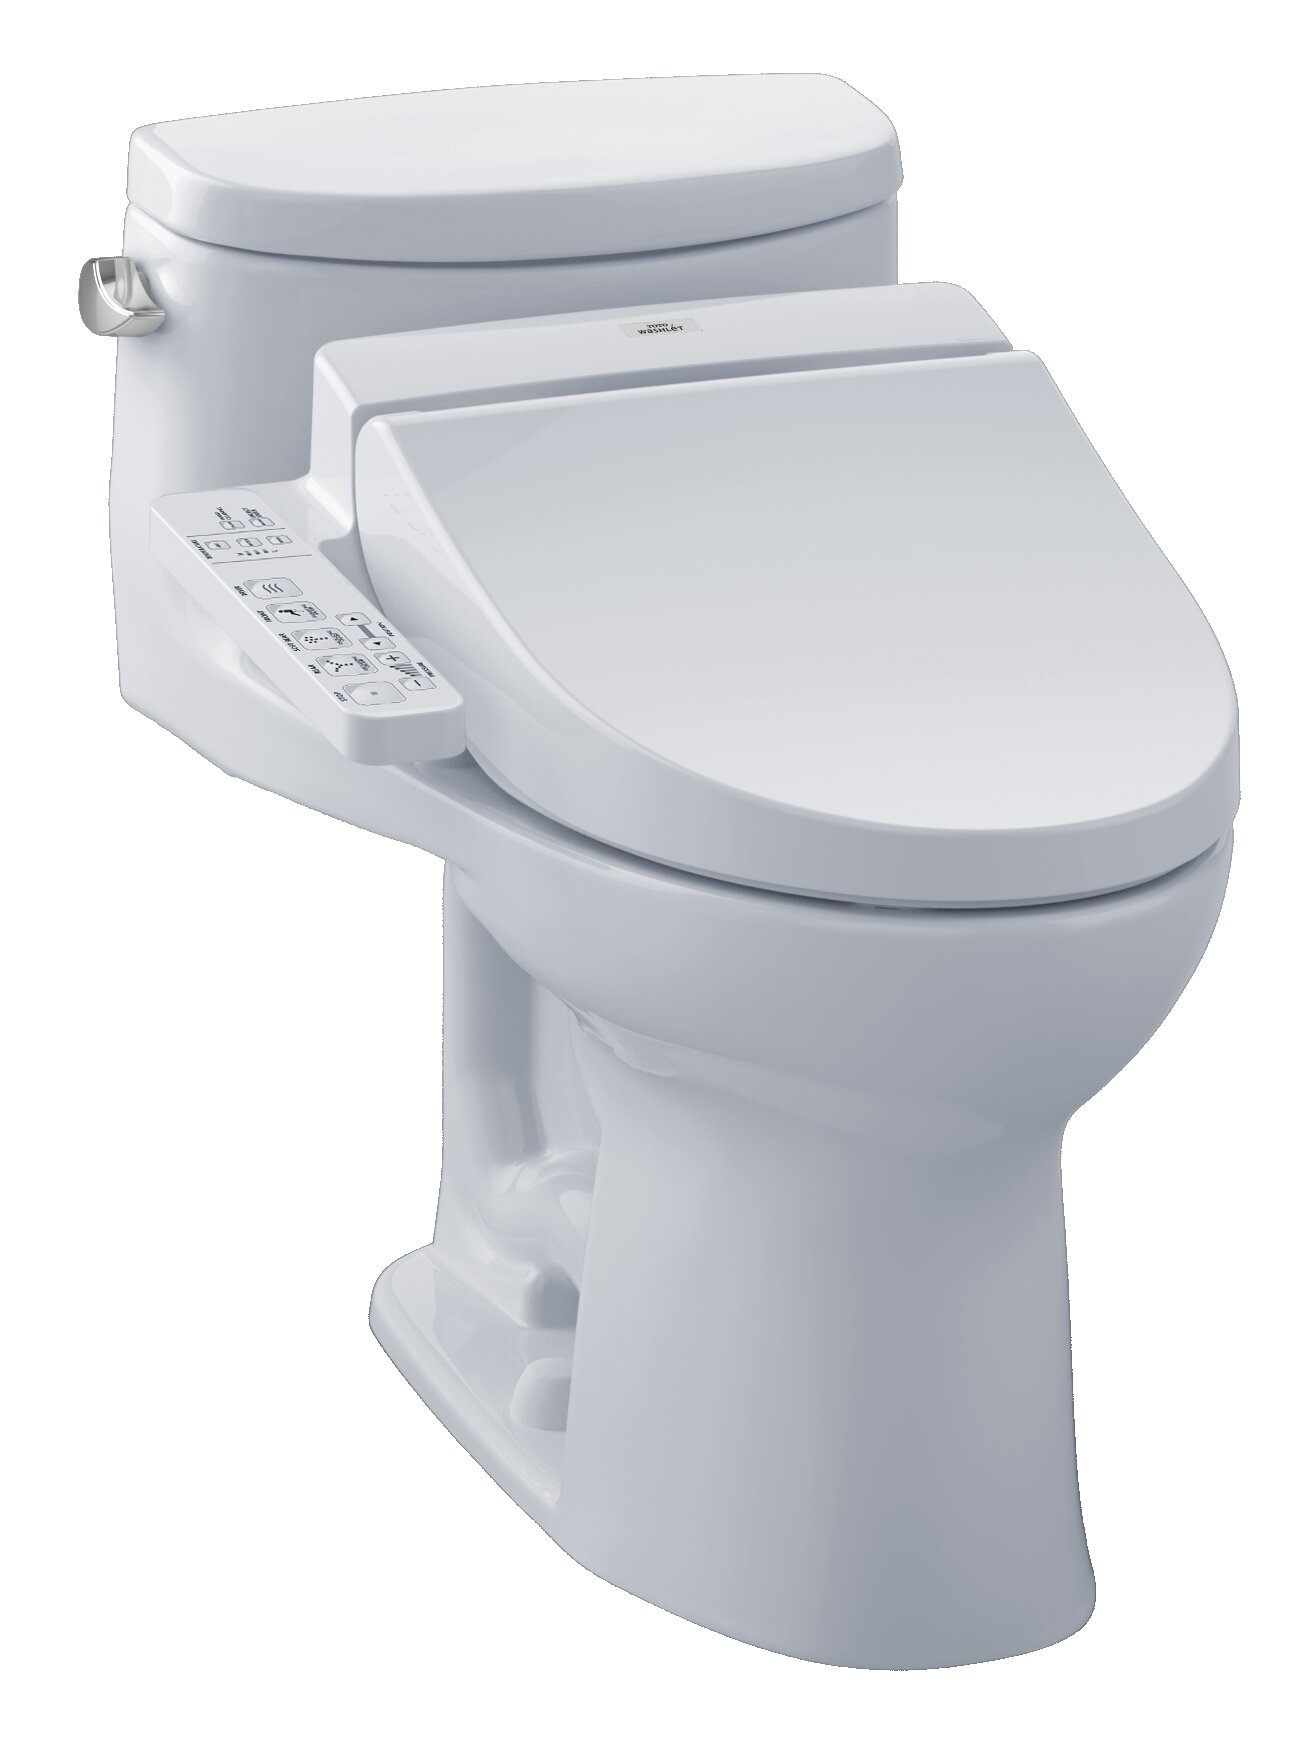 Toto Supreme 1.28 GPF (Water Efficient) Elongated One-Piece Toilet ...